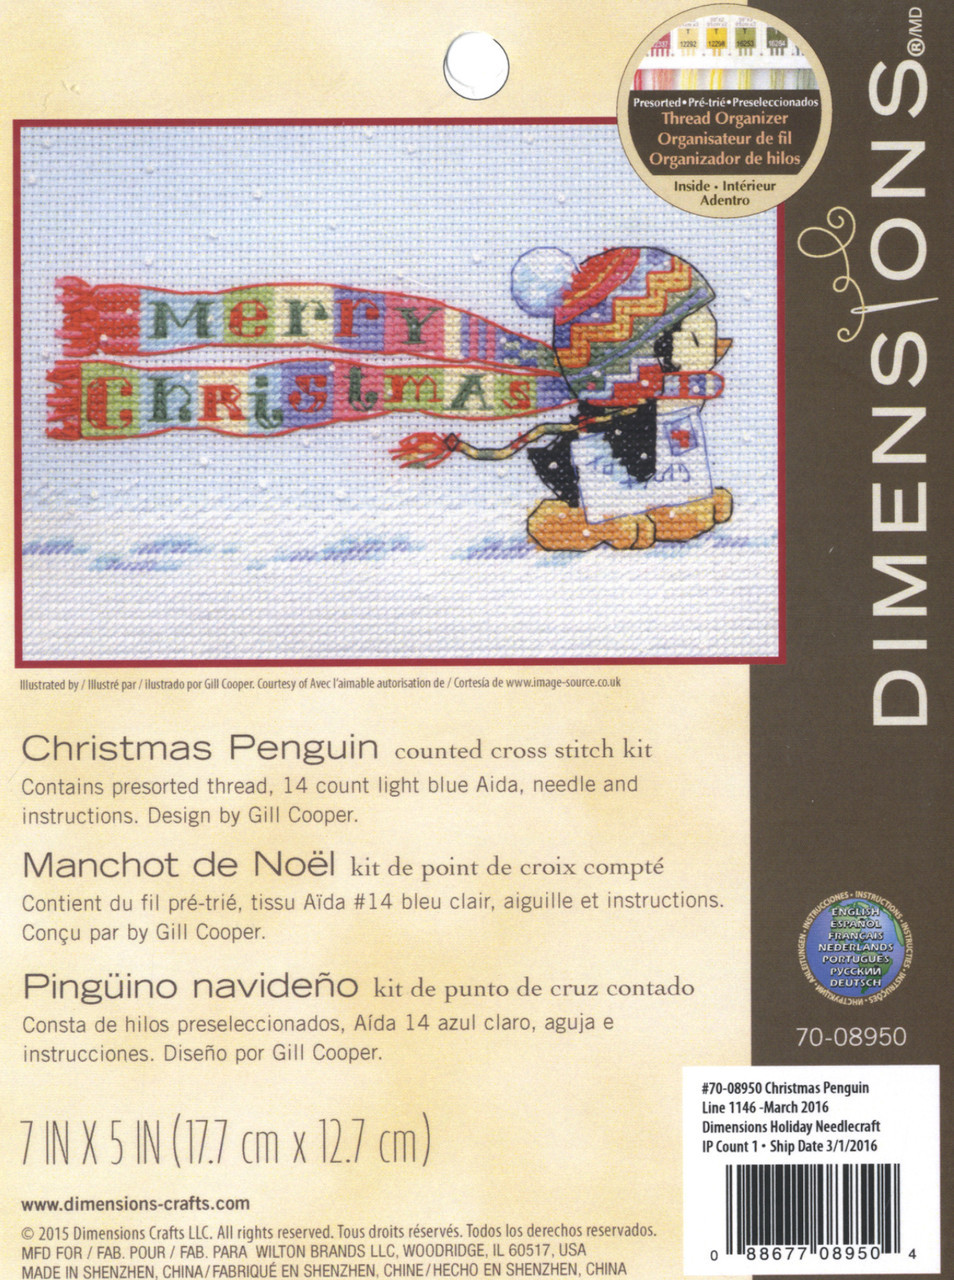 Dimensions - Christmas Penguin